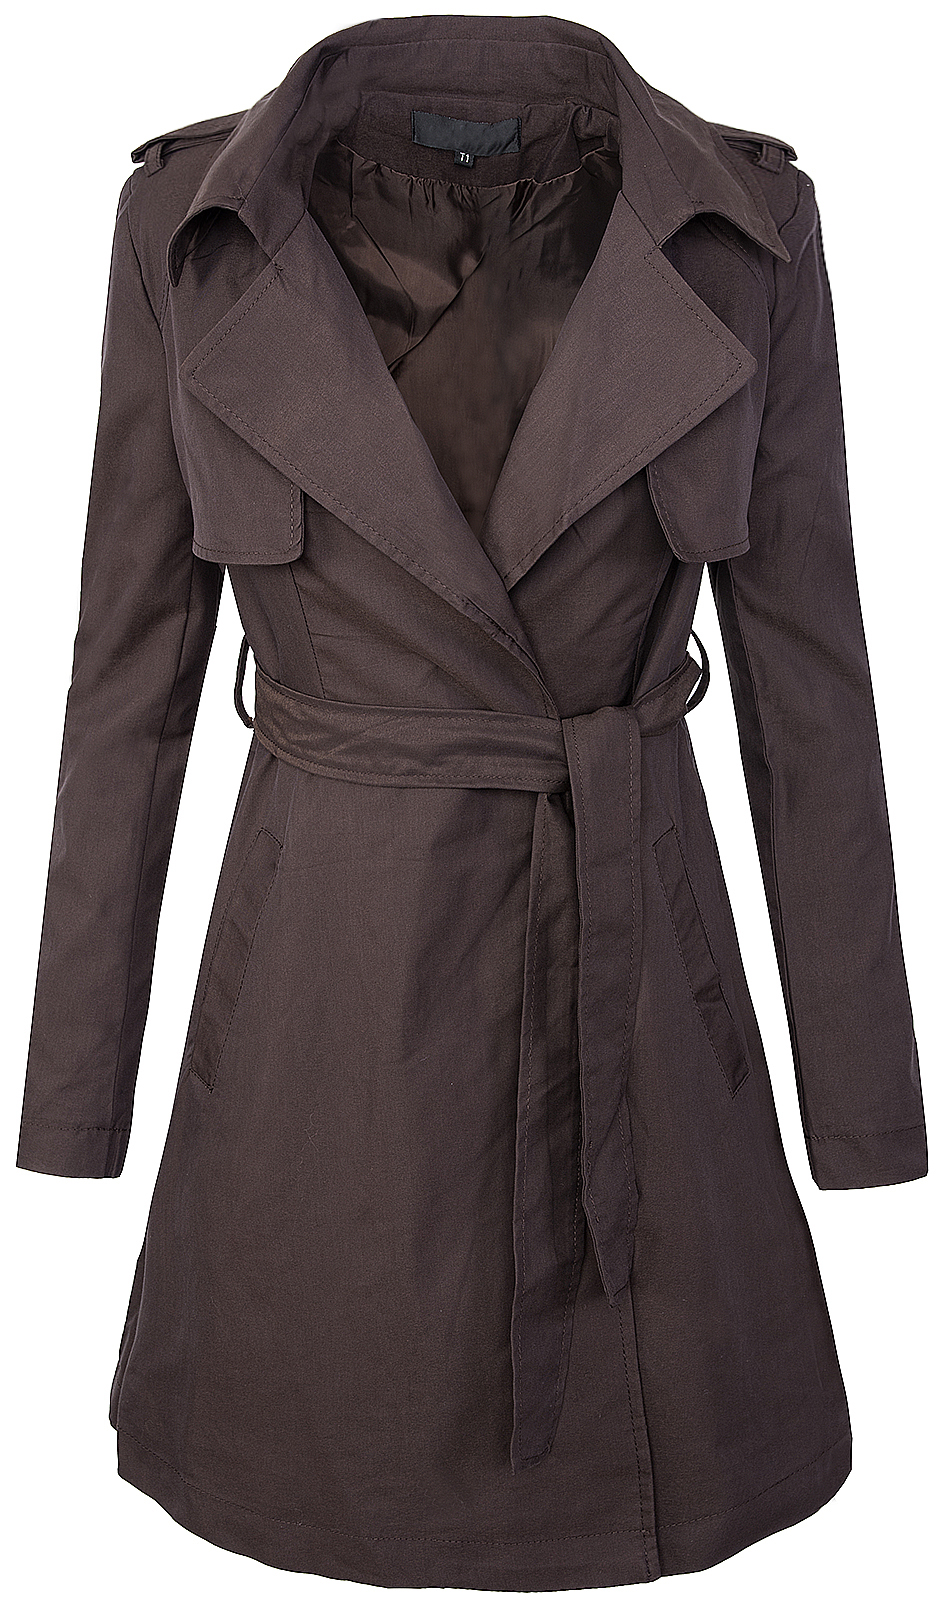 eleganter damen trenchcoat mantel damen blogger bergangs jacke damenjacke d 18 ebay. Black Bedroom Furniture Sets. Home Design Ideas